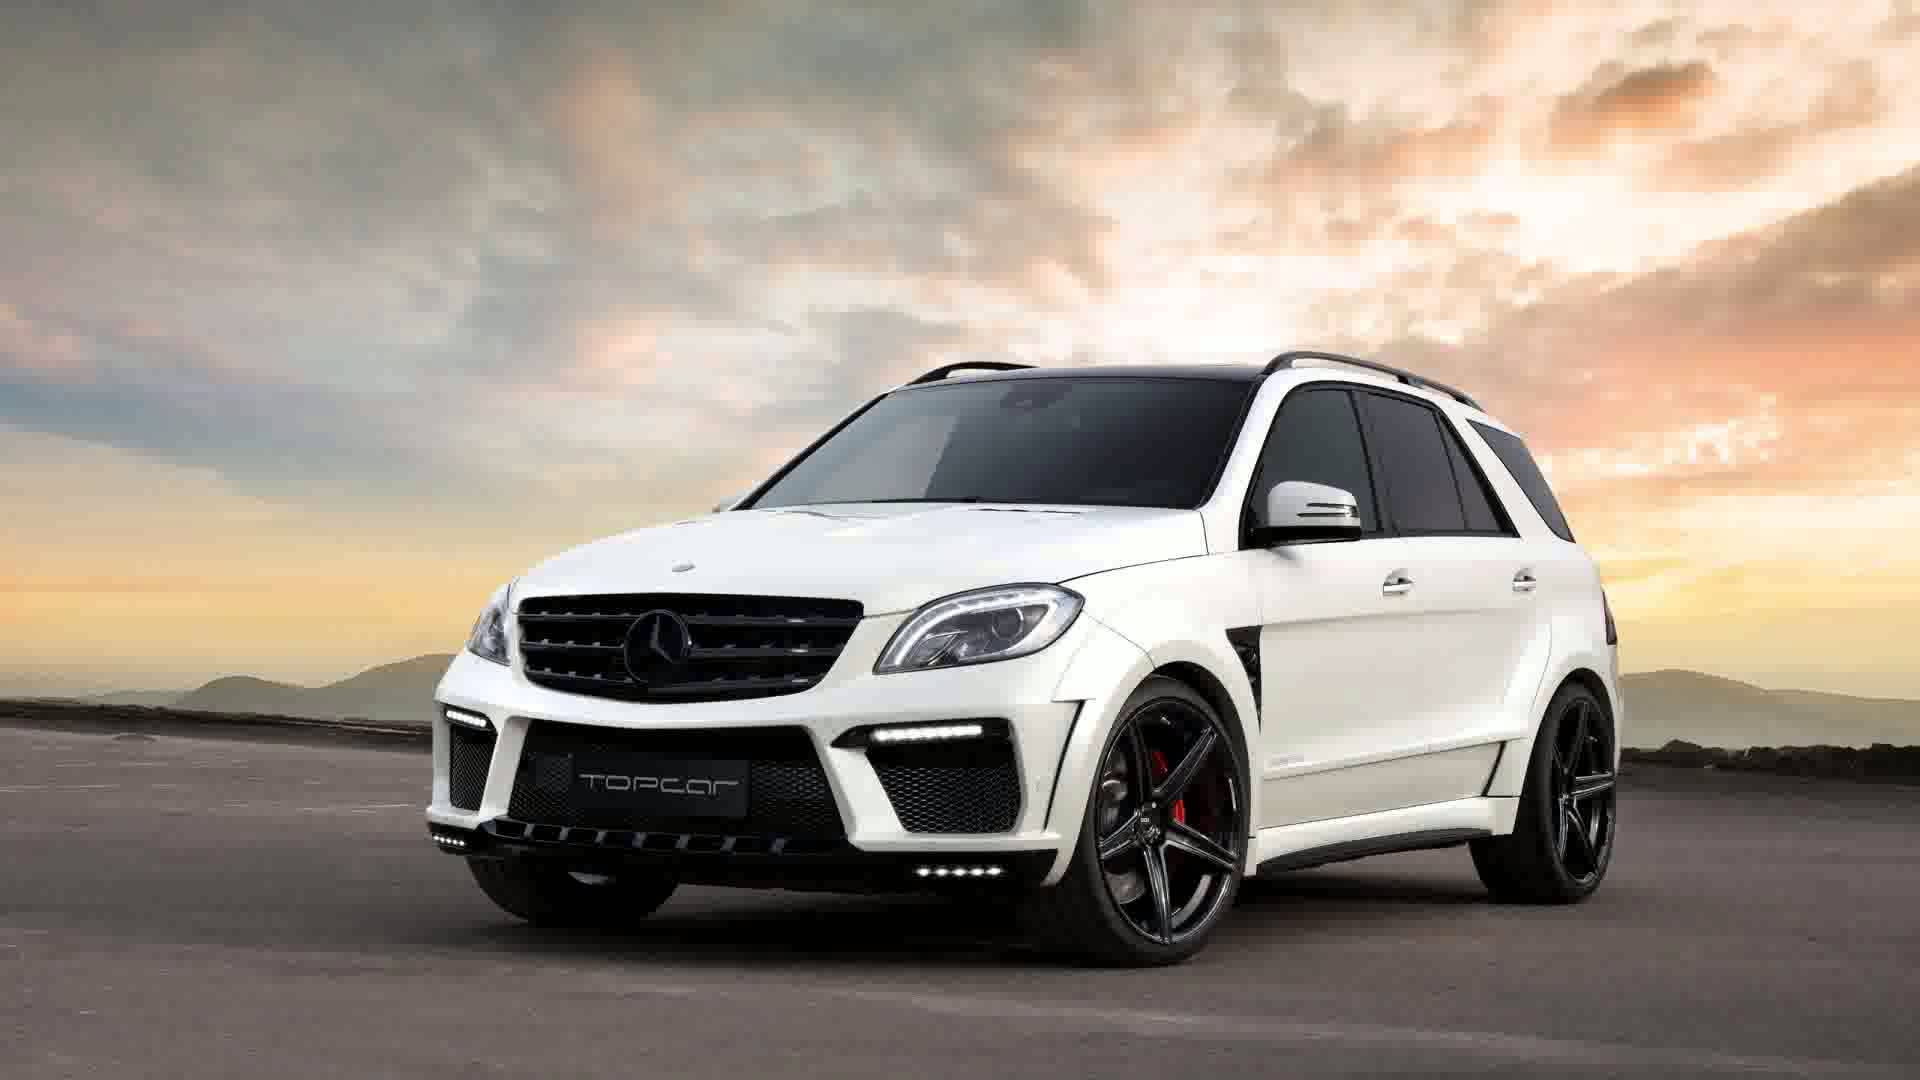 Mercedes benz m class ml63 amg 2015 suv drive for Mercedes benz amg ml63